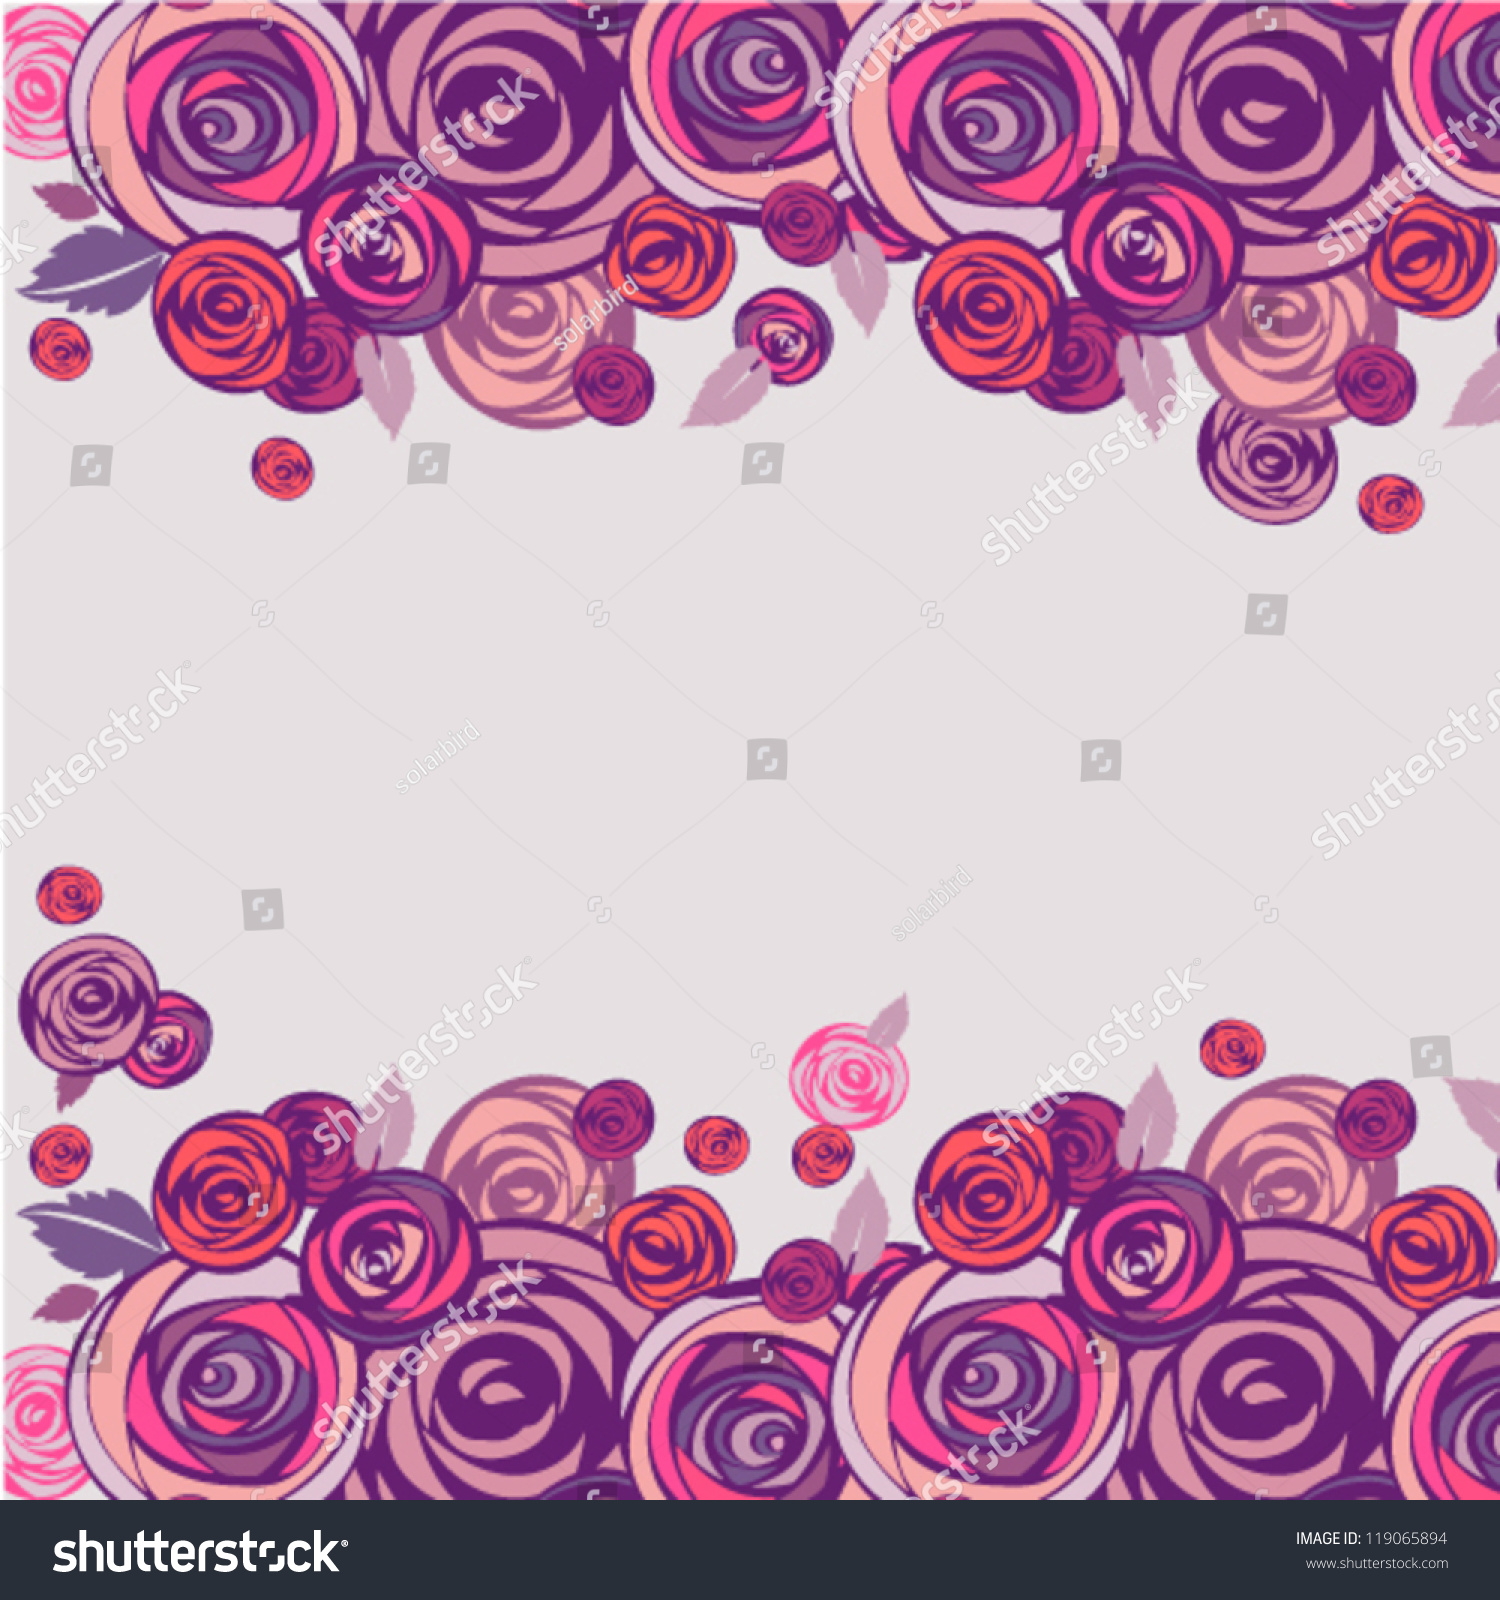 floral background pink and purple roses border vector